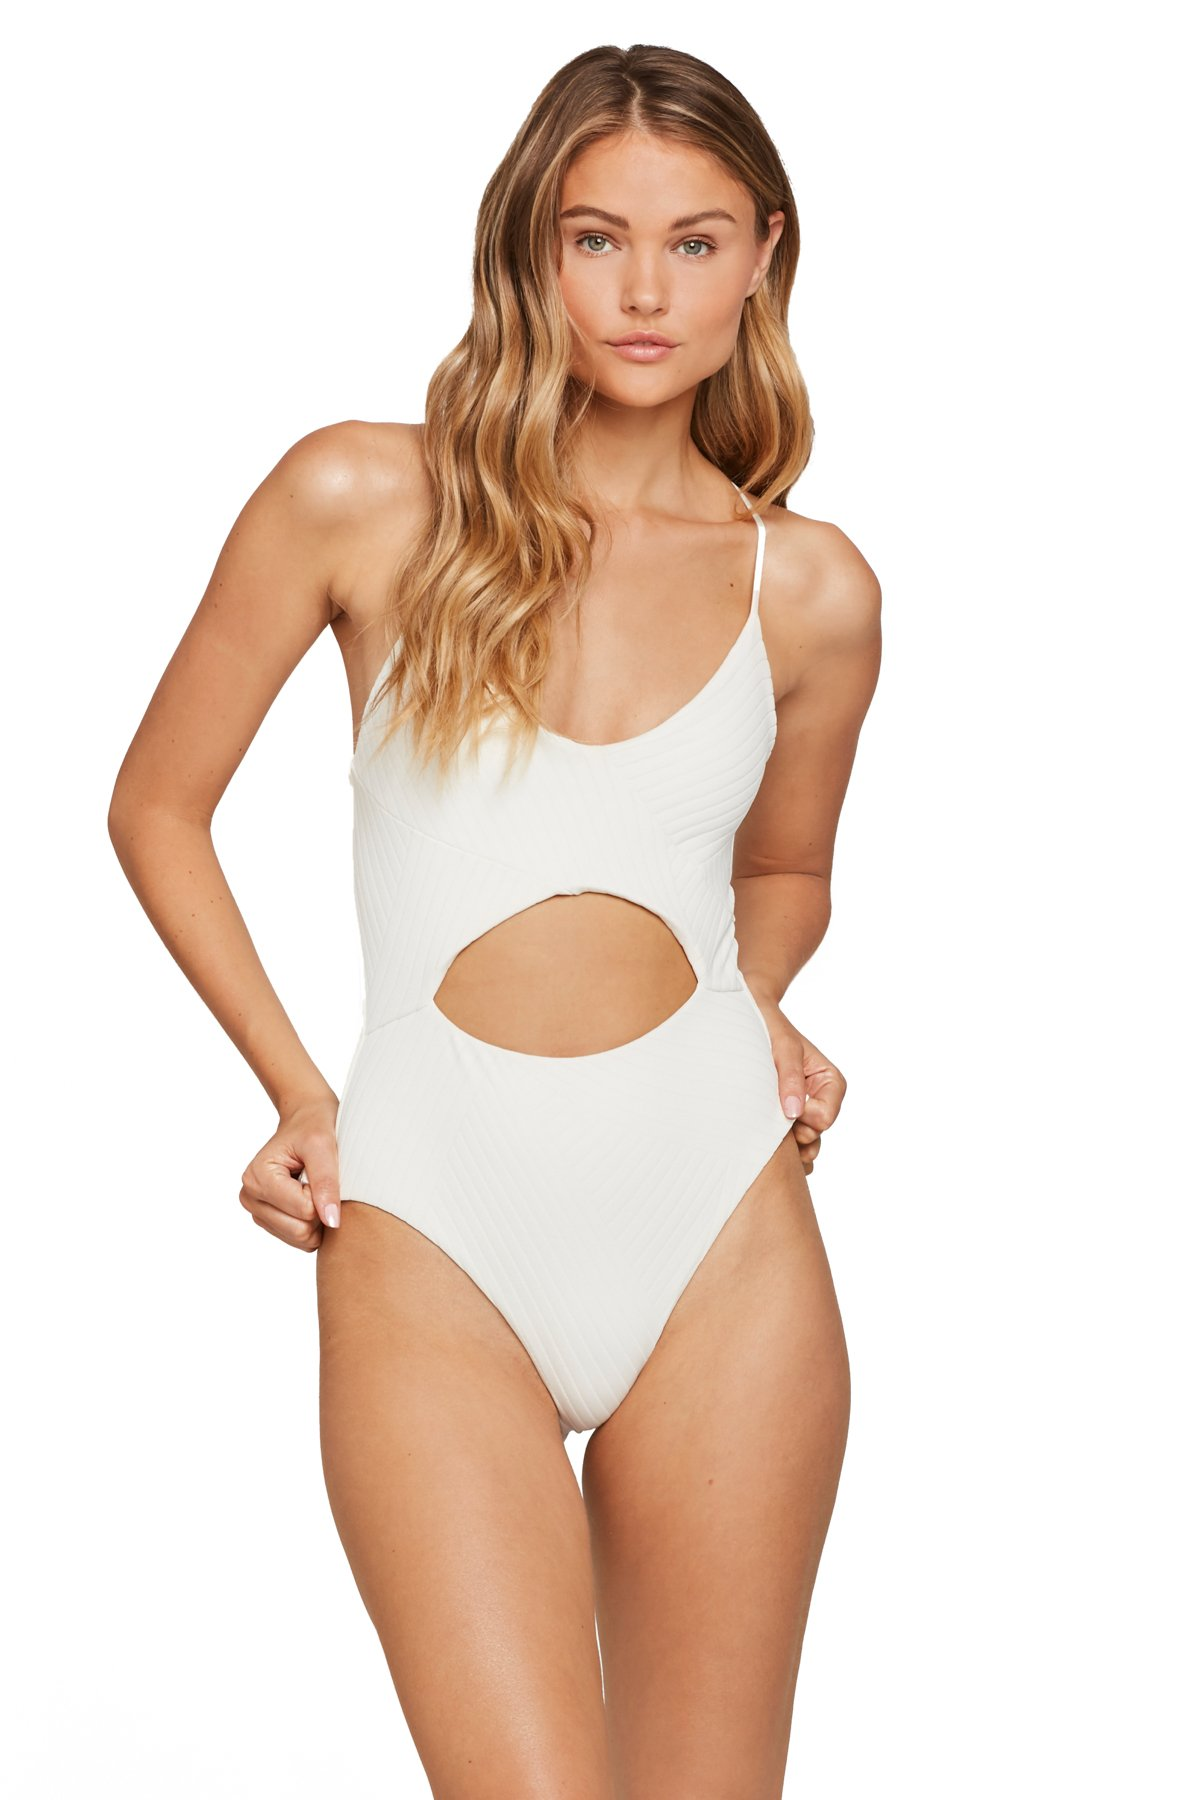 Miss Molly Lingerie Strap One Piece Swimsuit - Cream 1